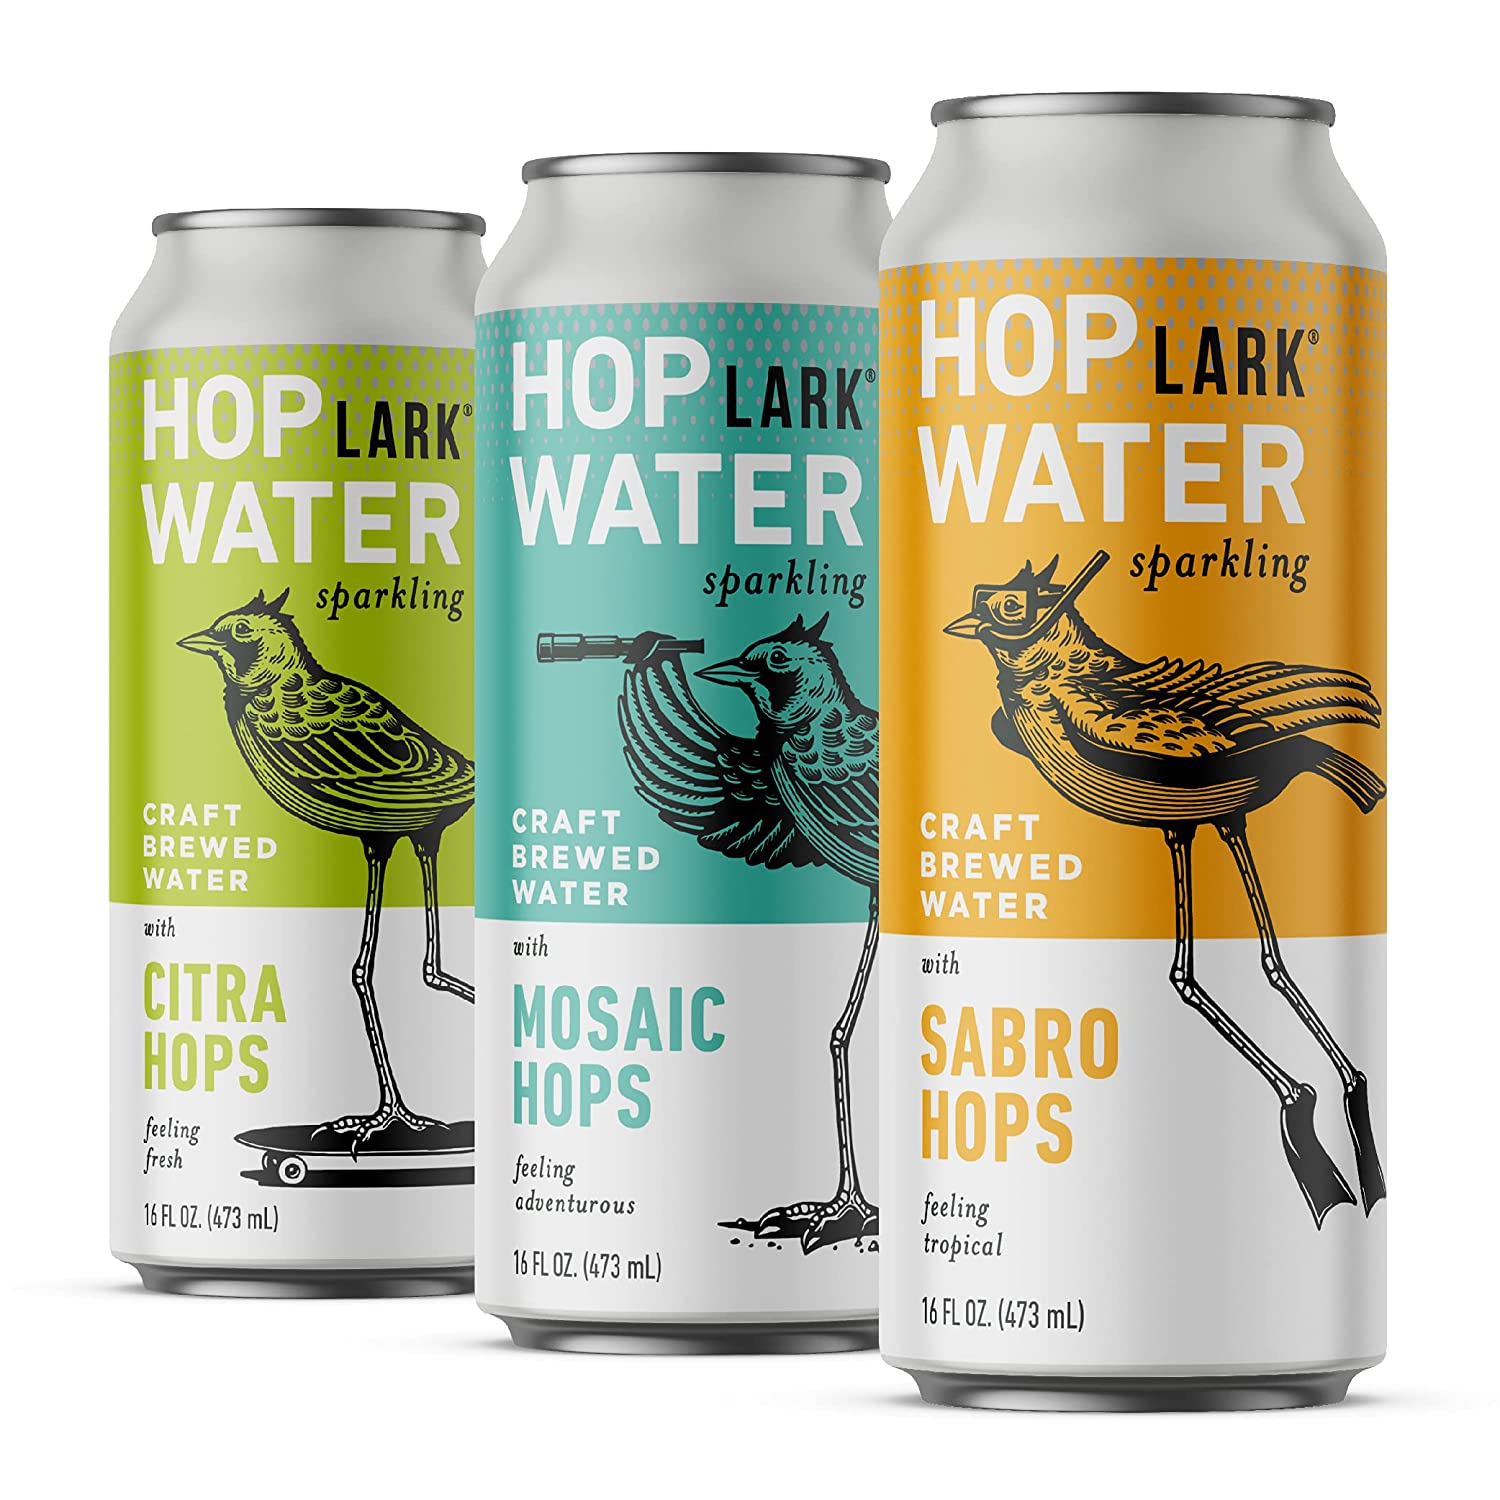 Fashion HOPLARK Water Luxury - Mixed Pack 12 Wate 16oz. Cans Sparkling Hop